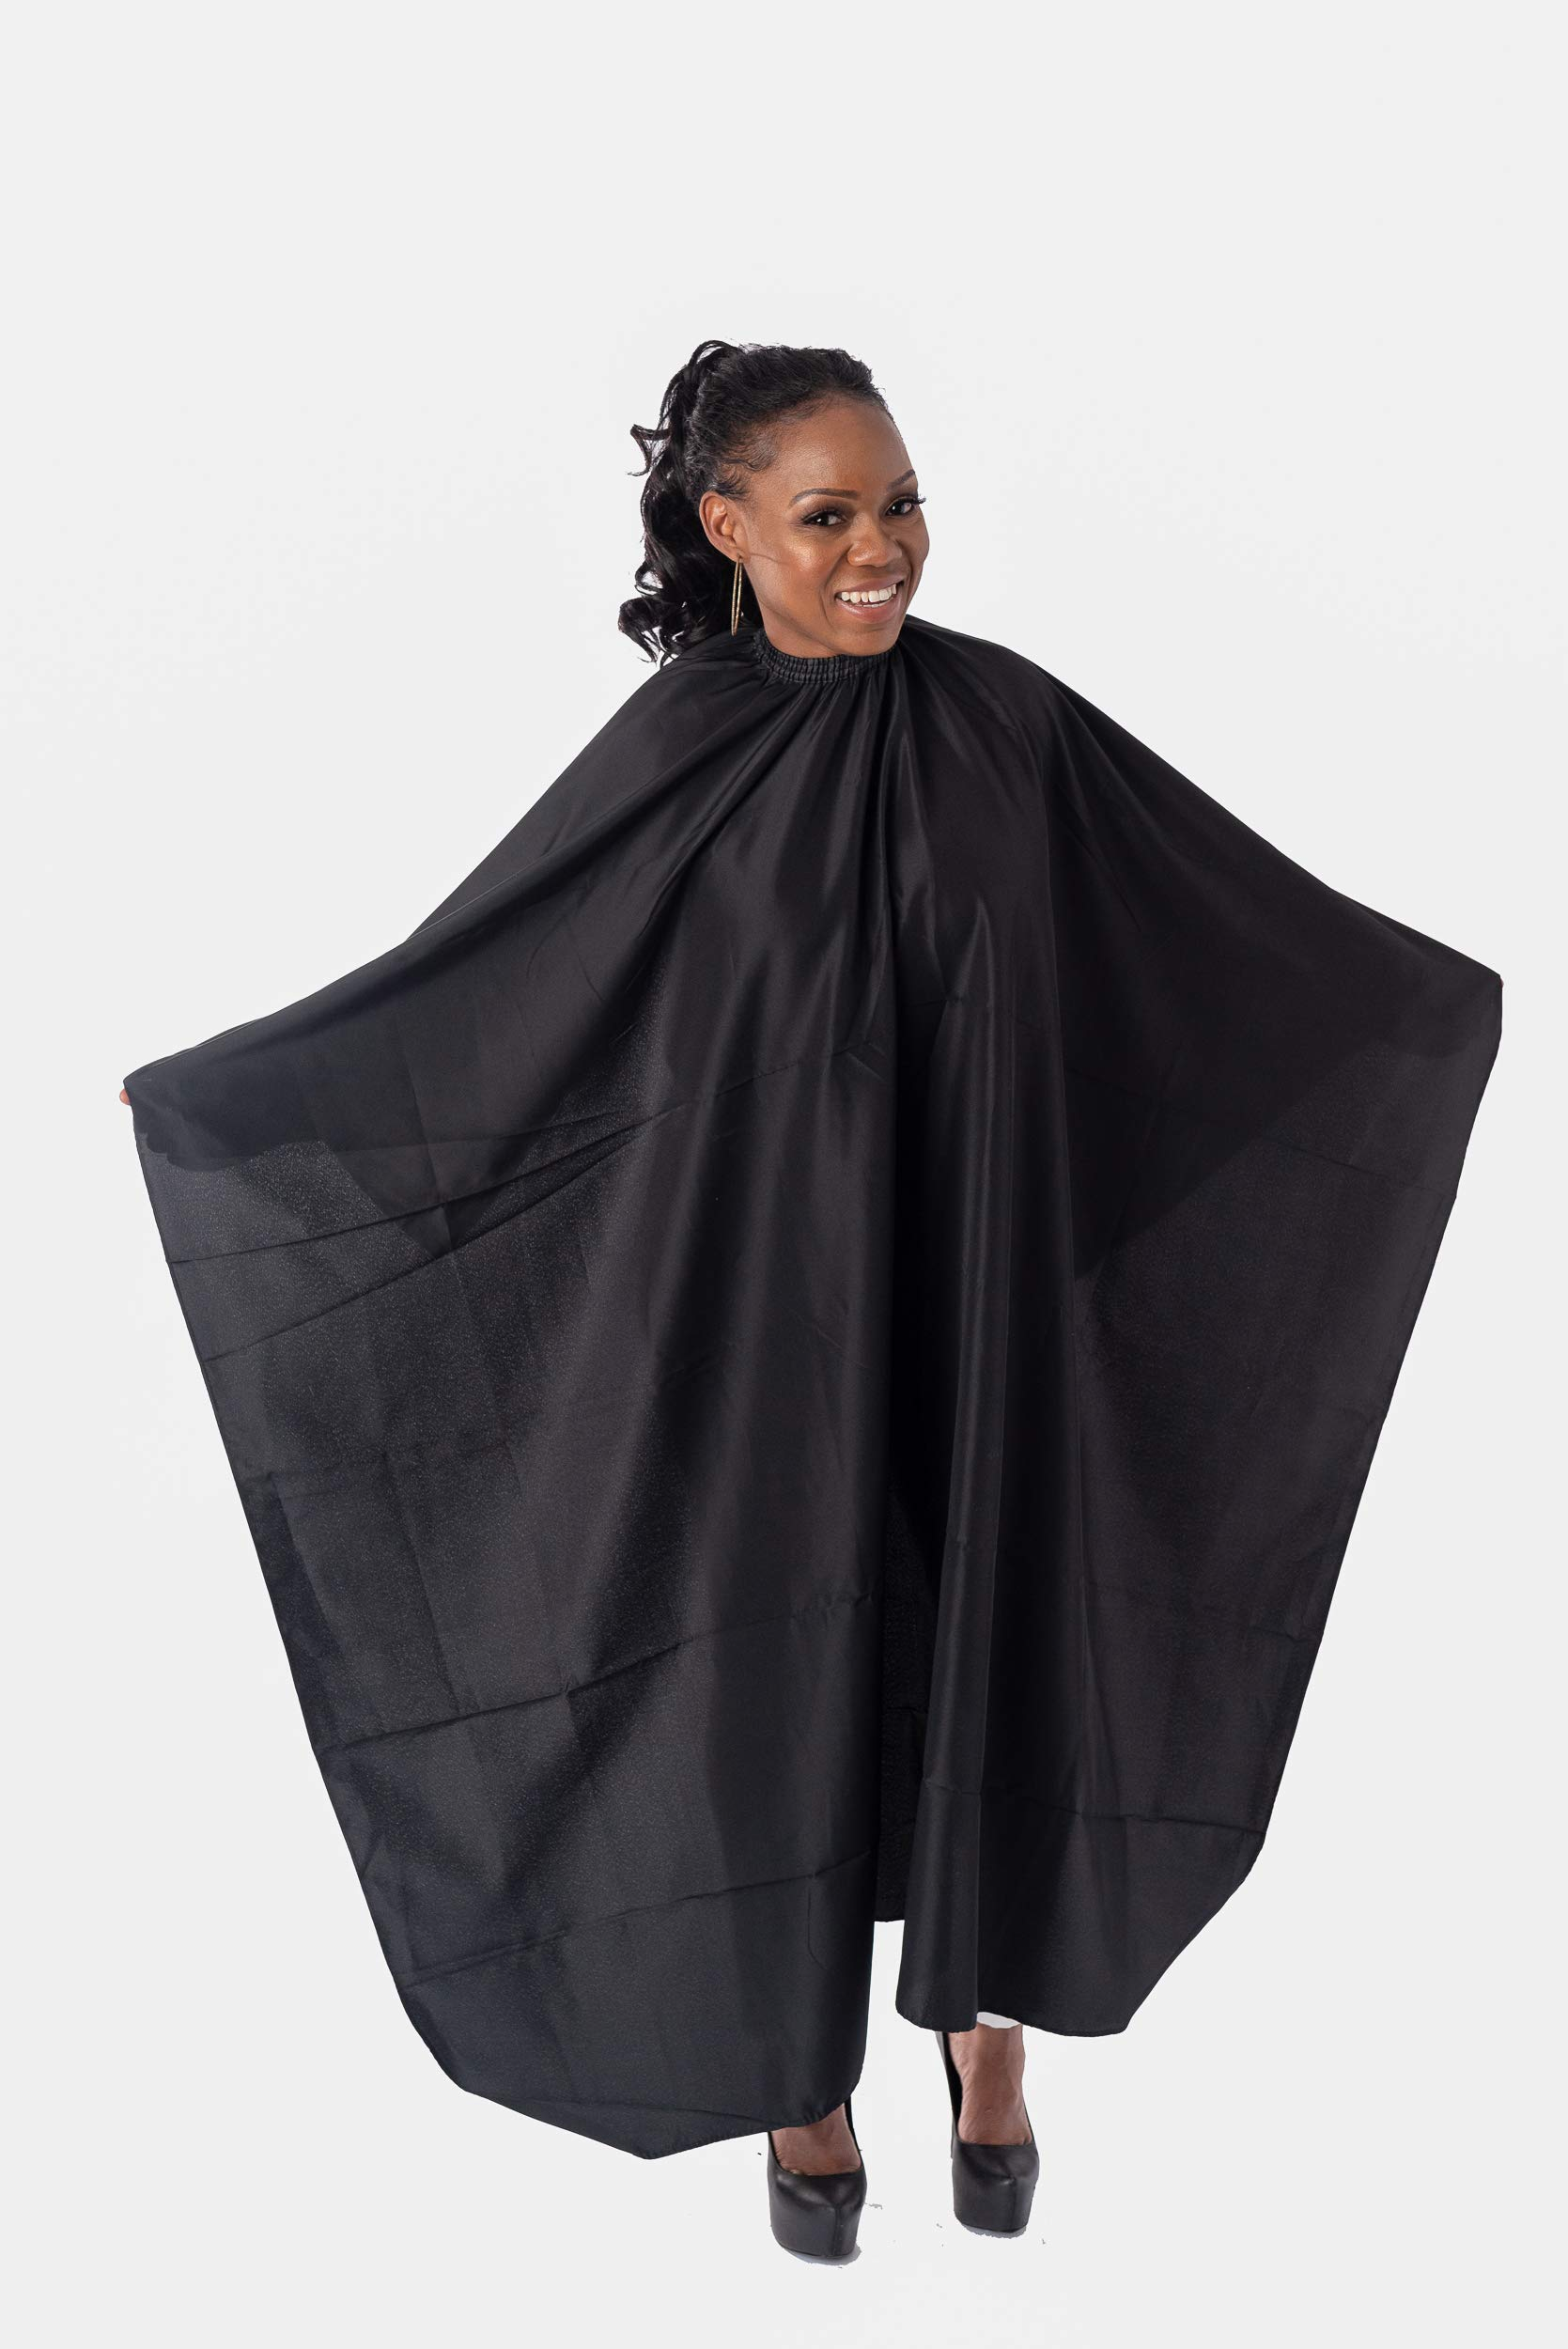 Capes By Sheena Black Hairdresser Barber Cape W/ 10 Snap Closure, X Large 66'' L x 53.5'' Stylist Supplies for Hair-Cutting